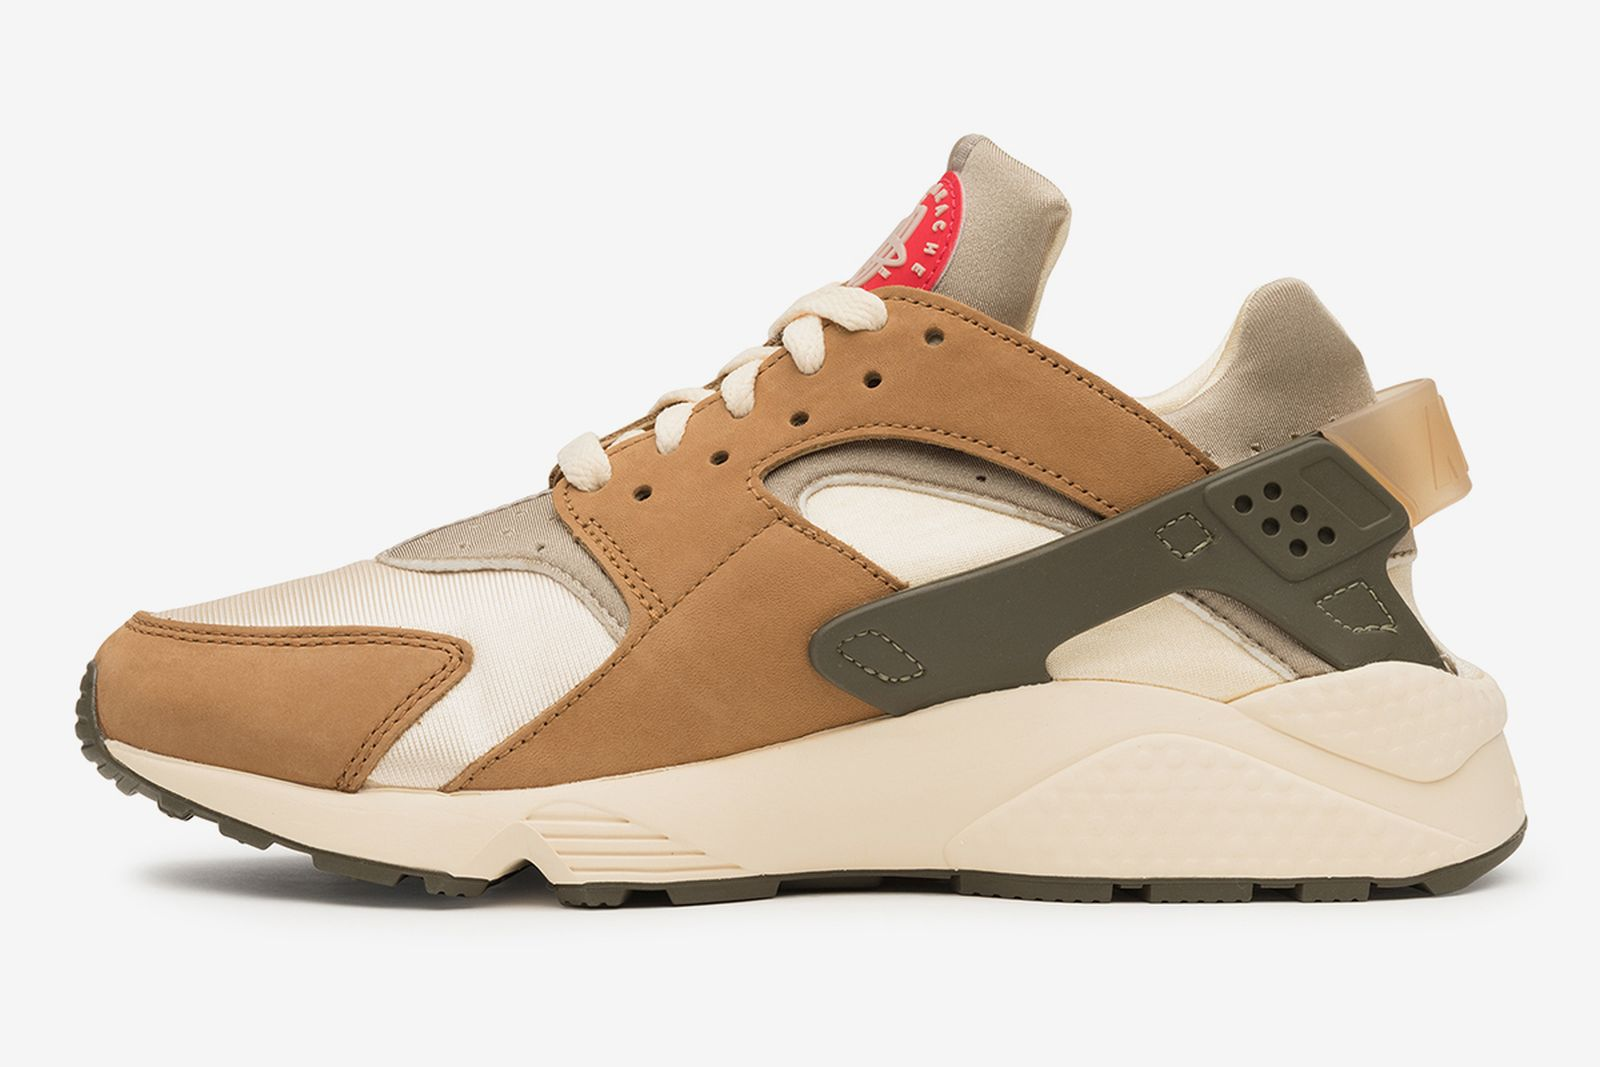 stussy-nike-huarache-le-ss21-release-date-price-1-11